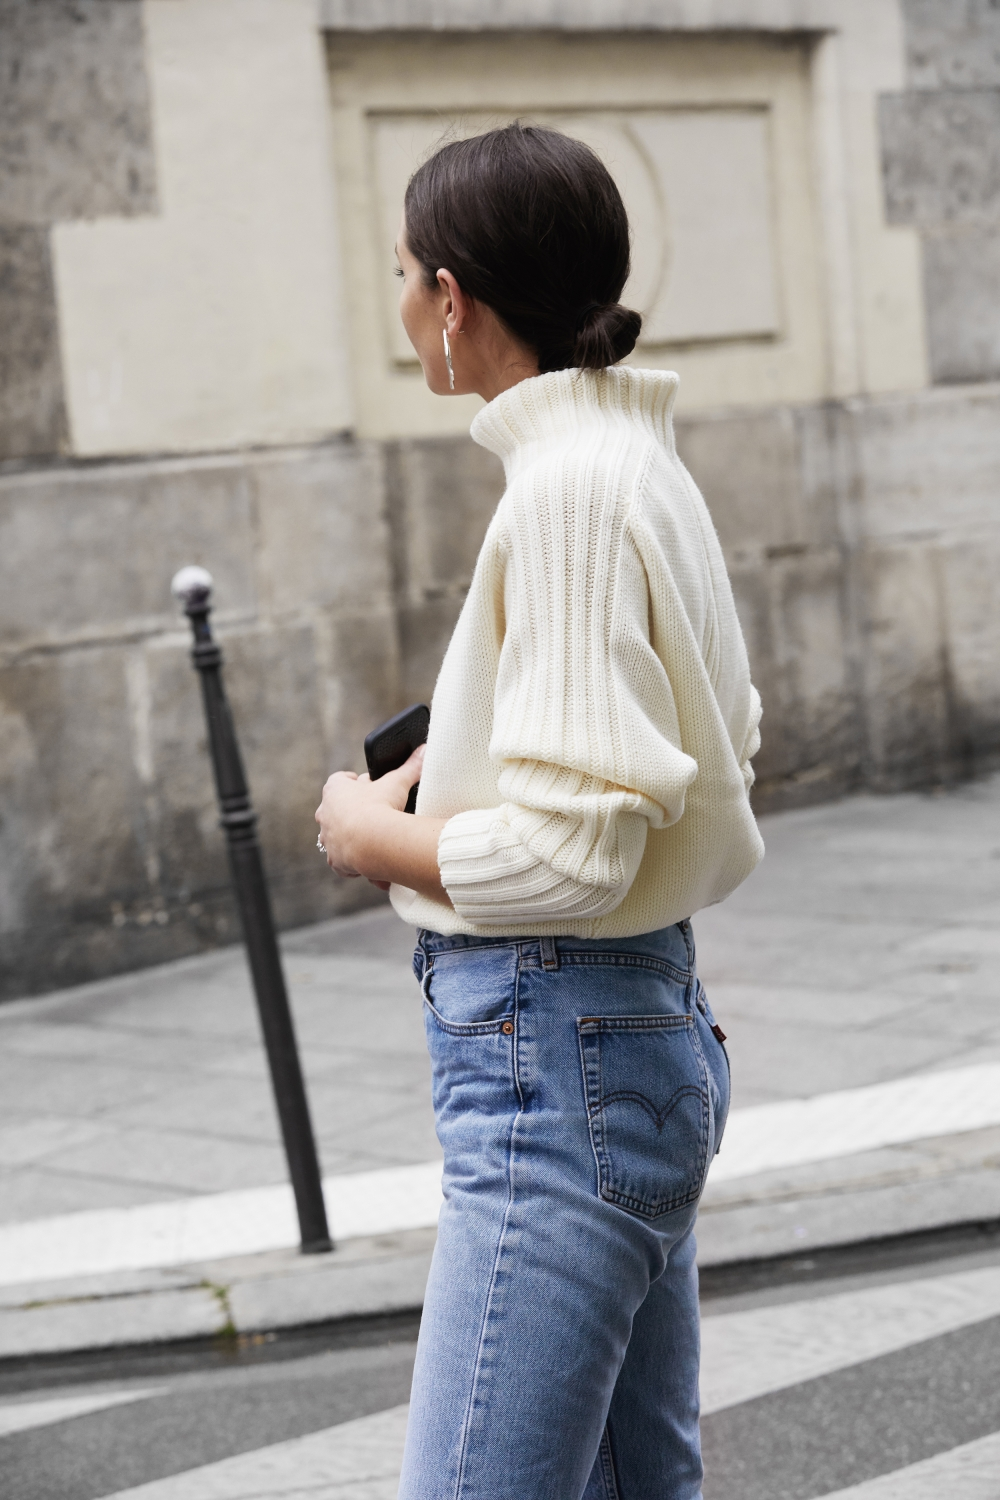 Australian Blogger Outfit — Harper & Harley's Sara Crampton in hoop earrings, turtleneck sweater, and Levi's jeans